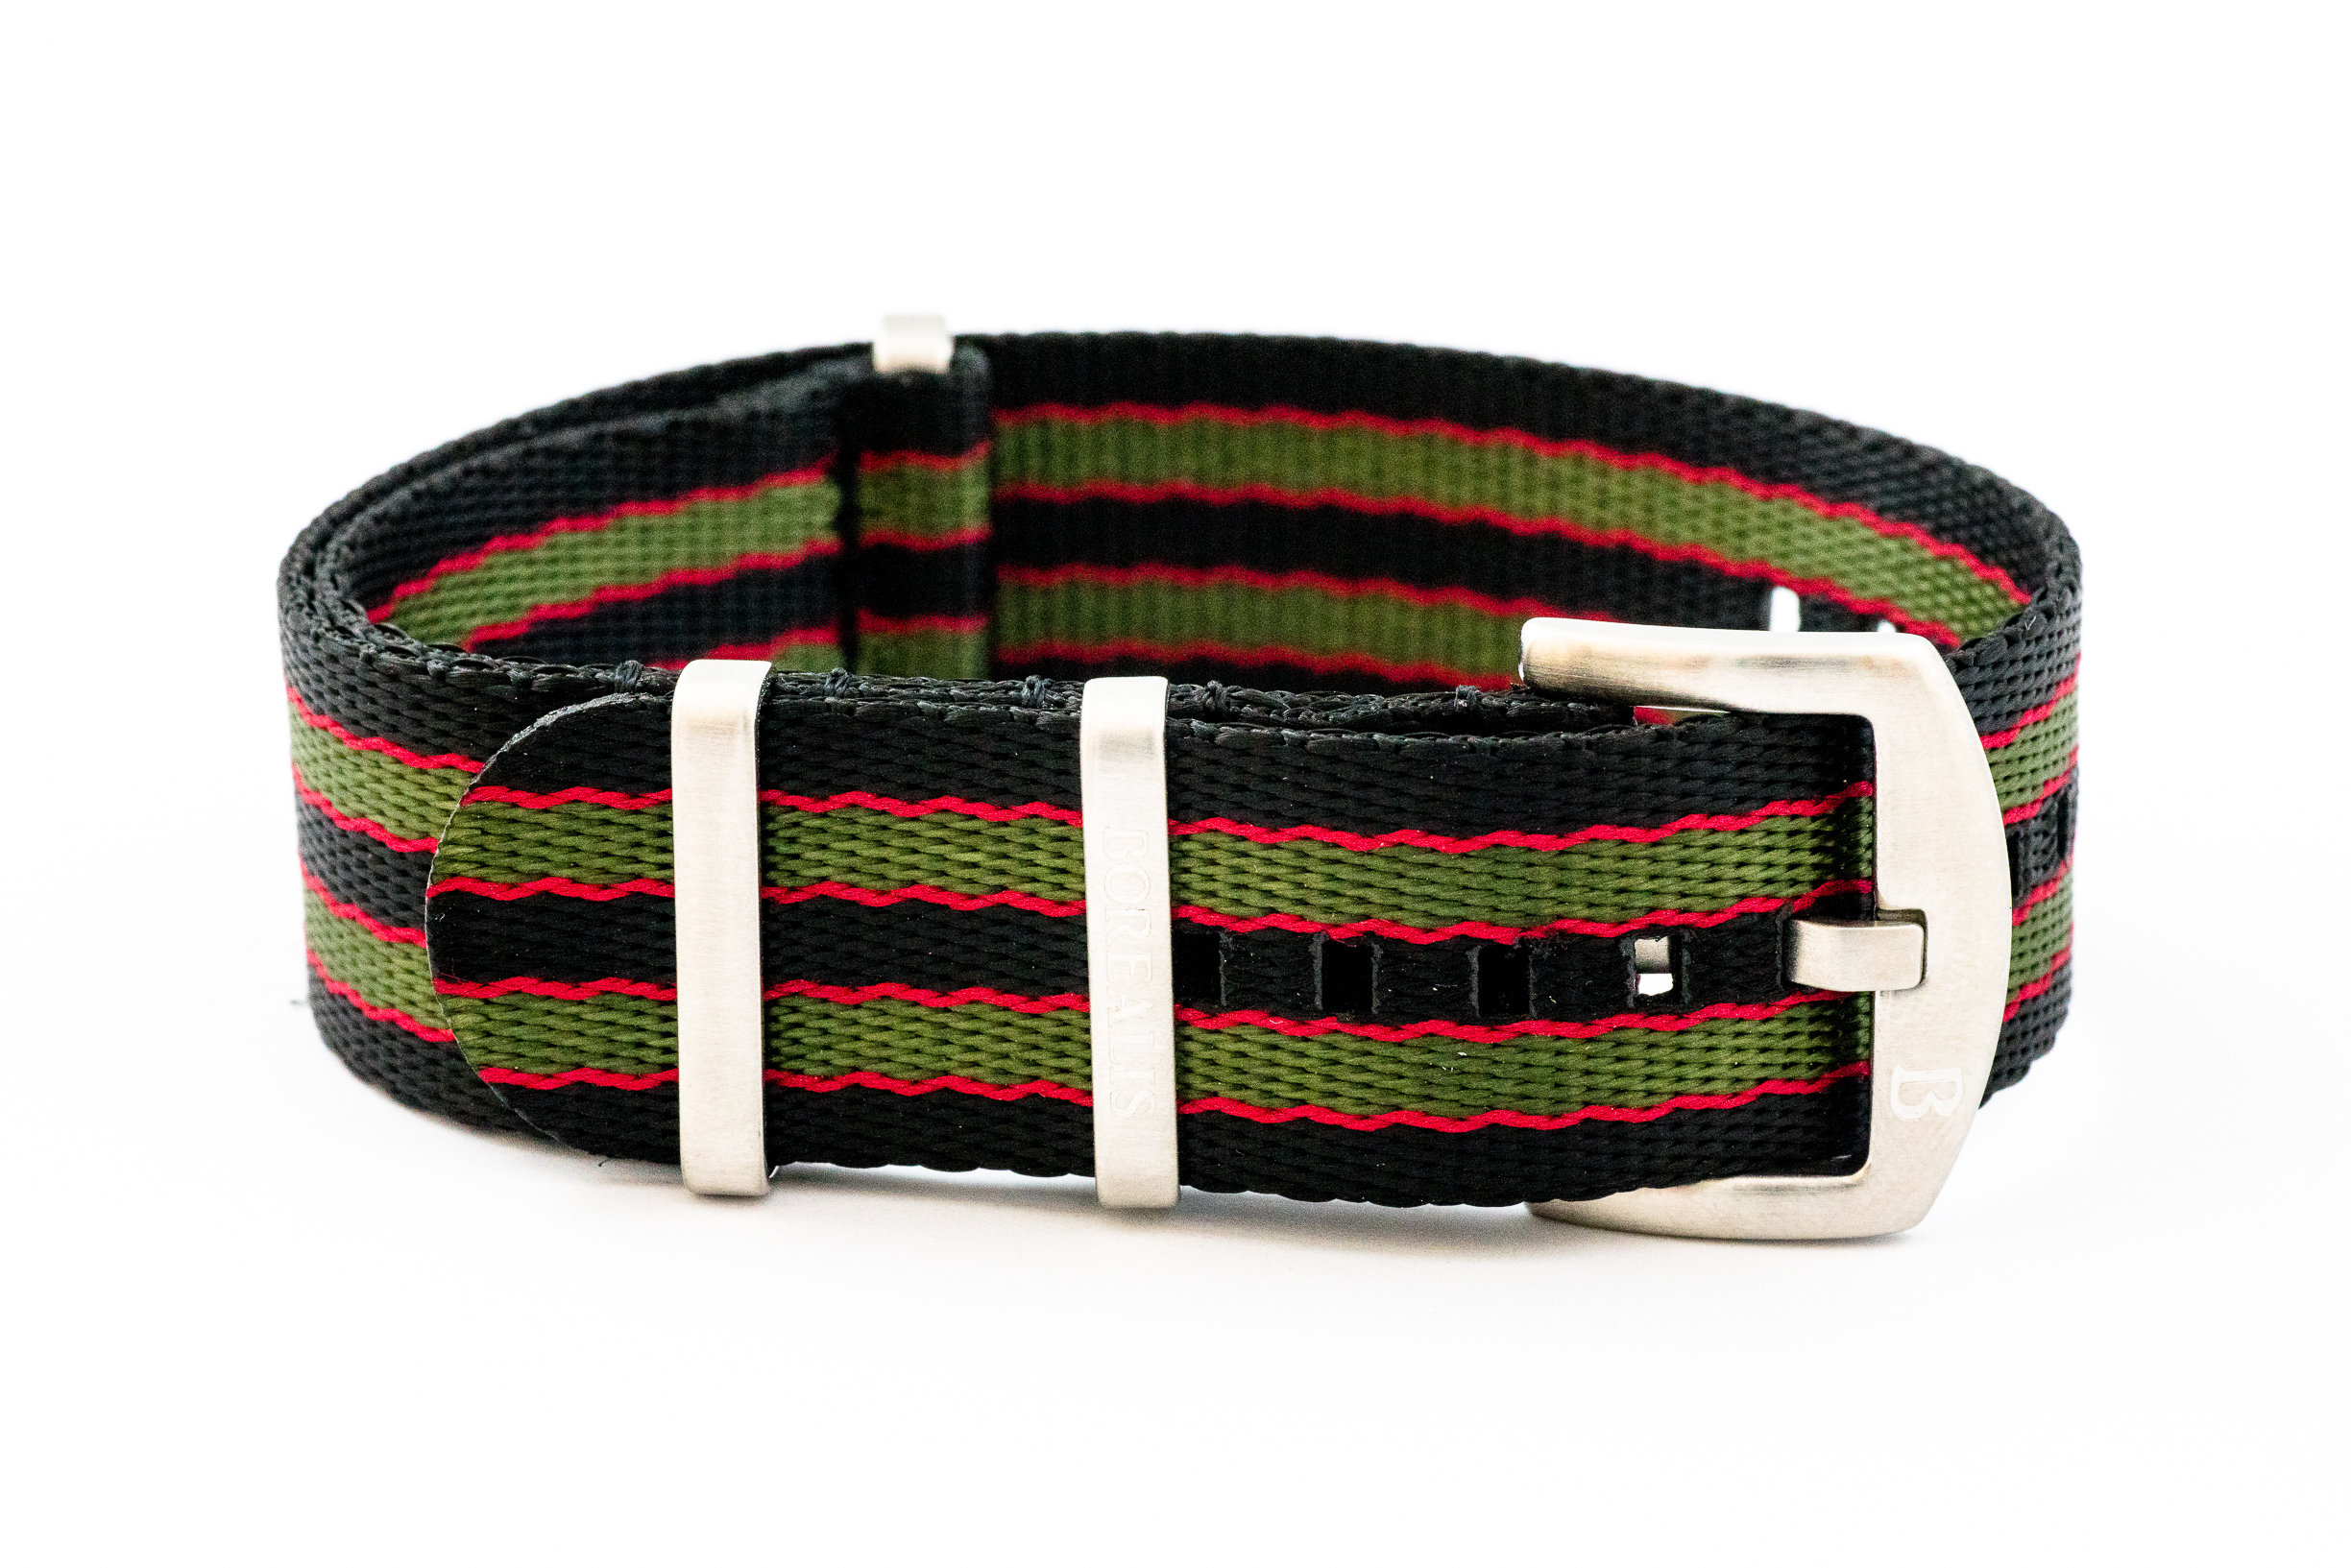 Premium Nato style seatbelt nylon strap 20mm size three tone black red green BSBNSBREDGREEN20MM